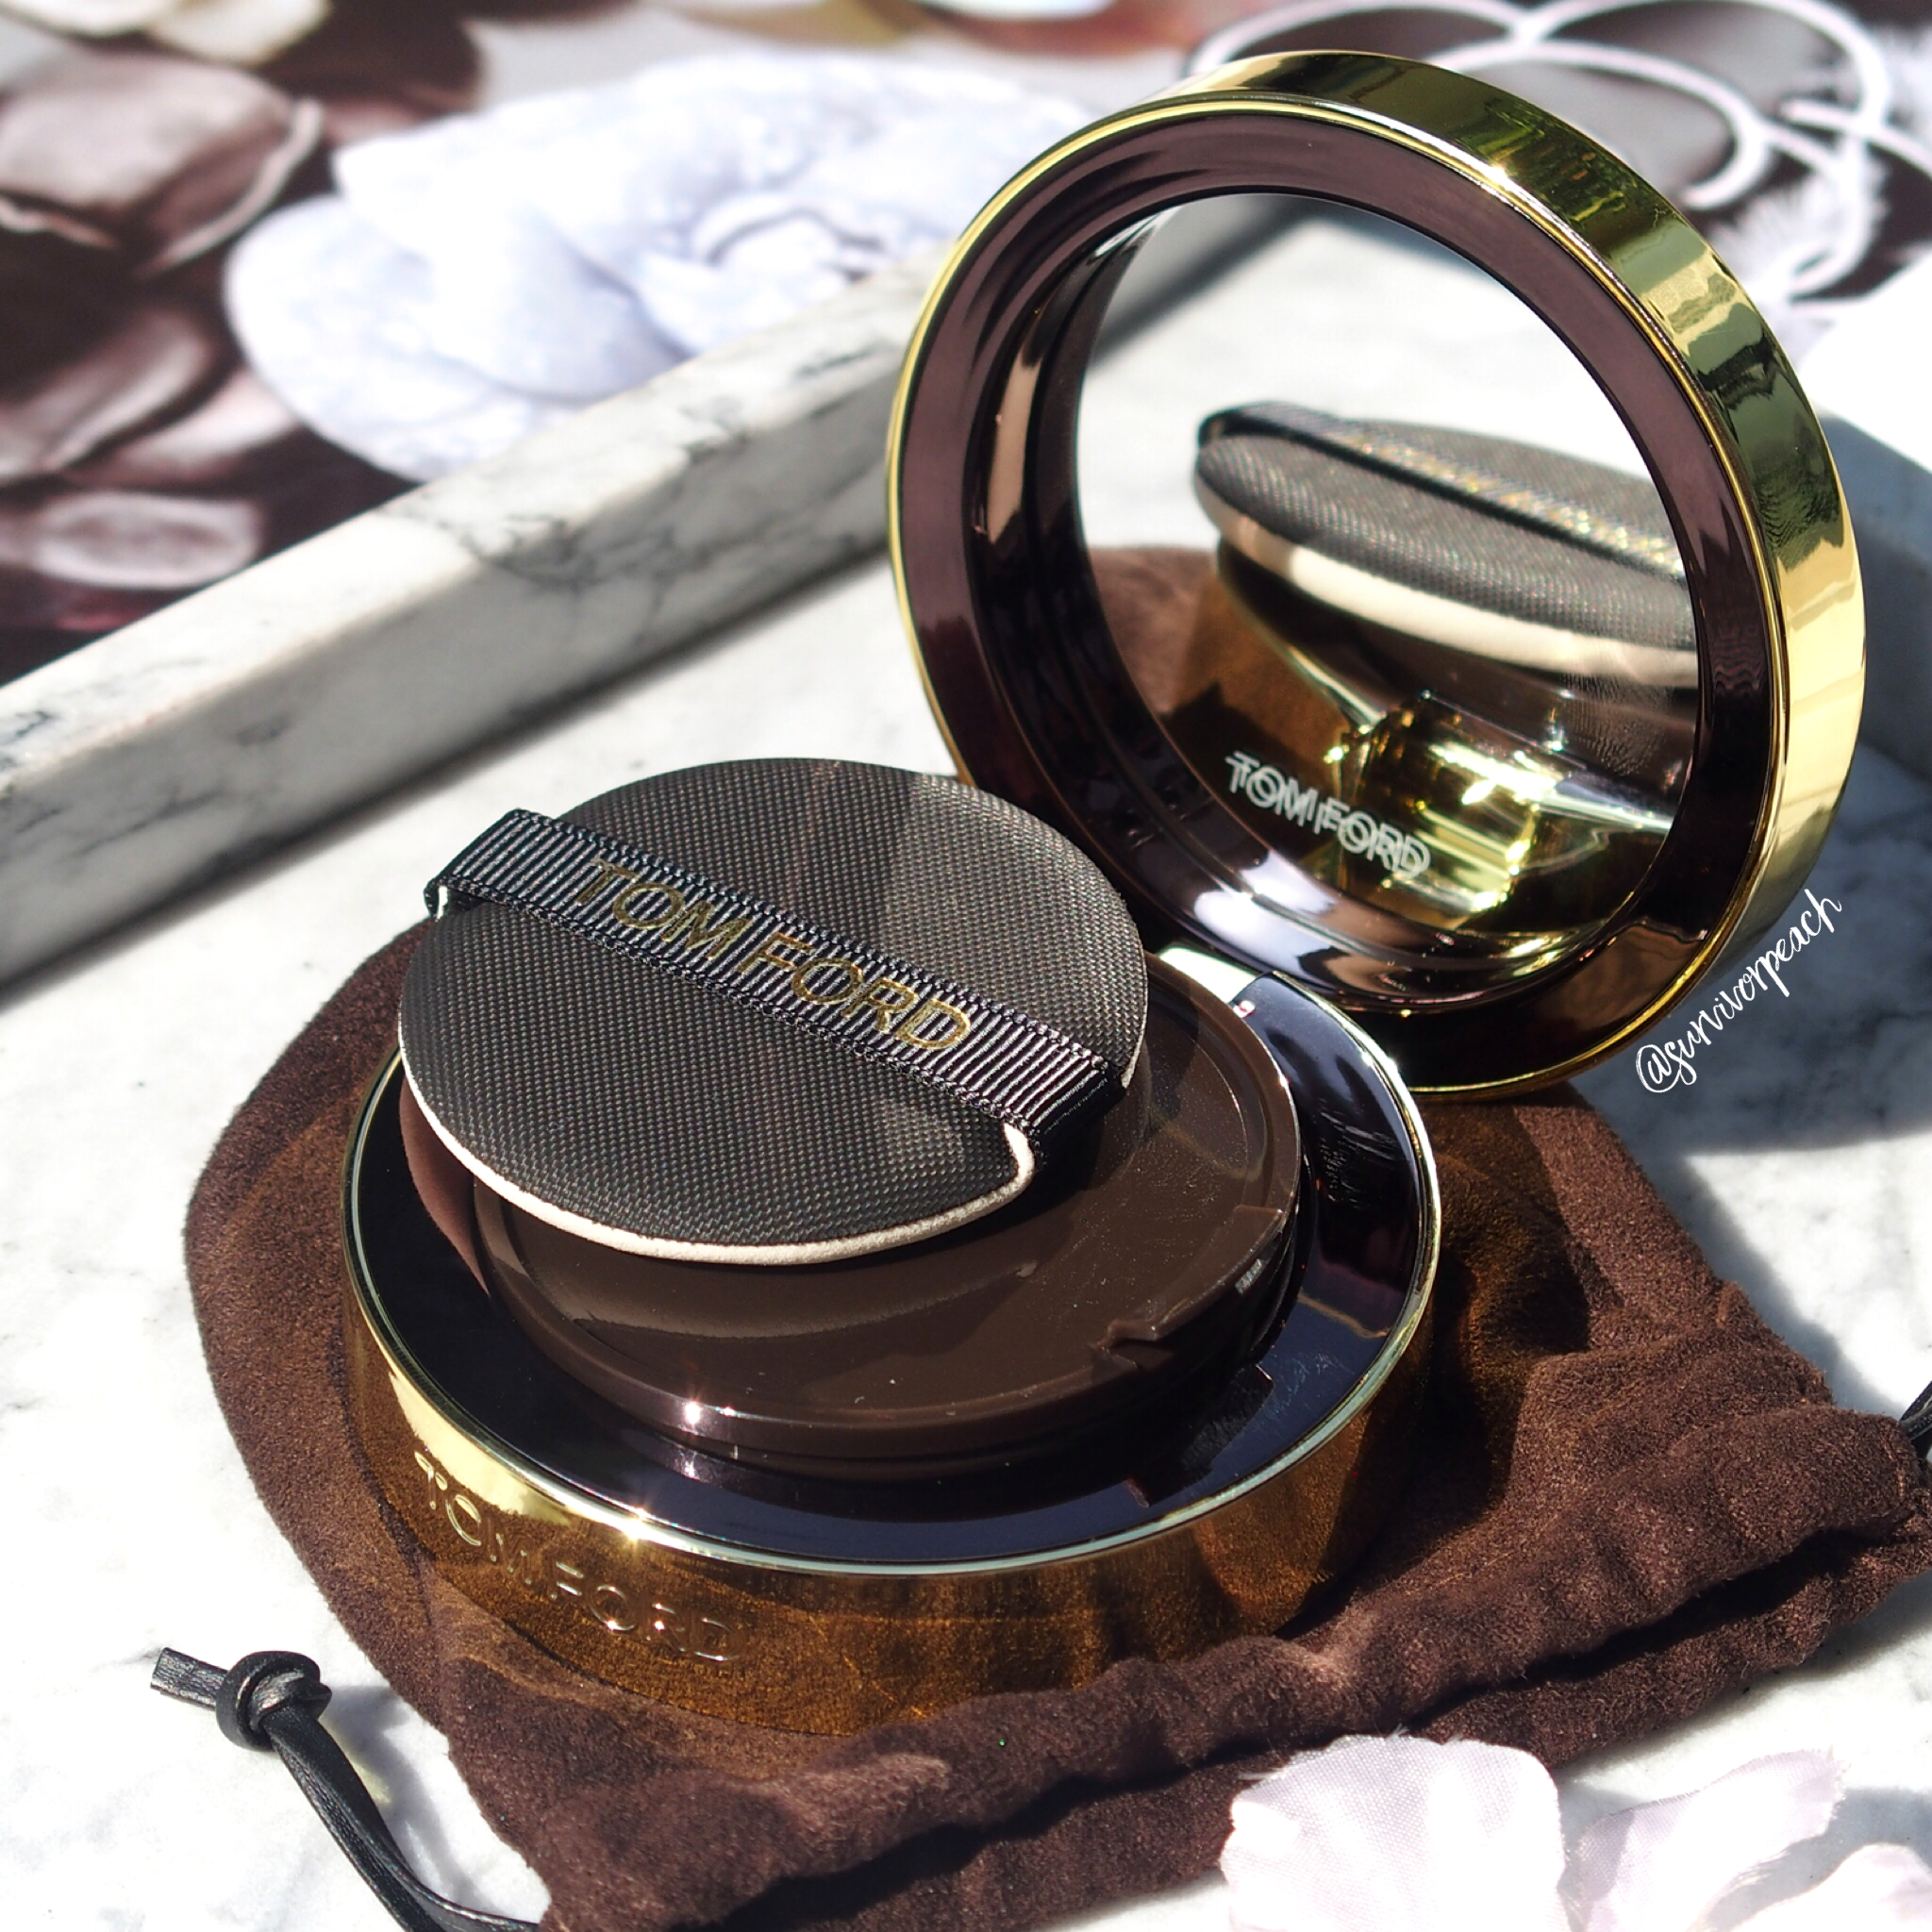 Tom Ford Traceless Touch Cushion compact